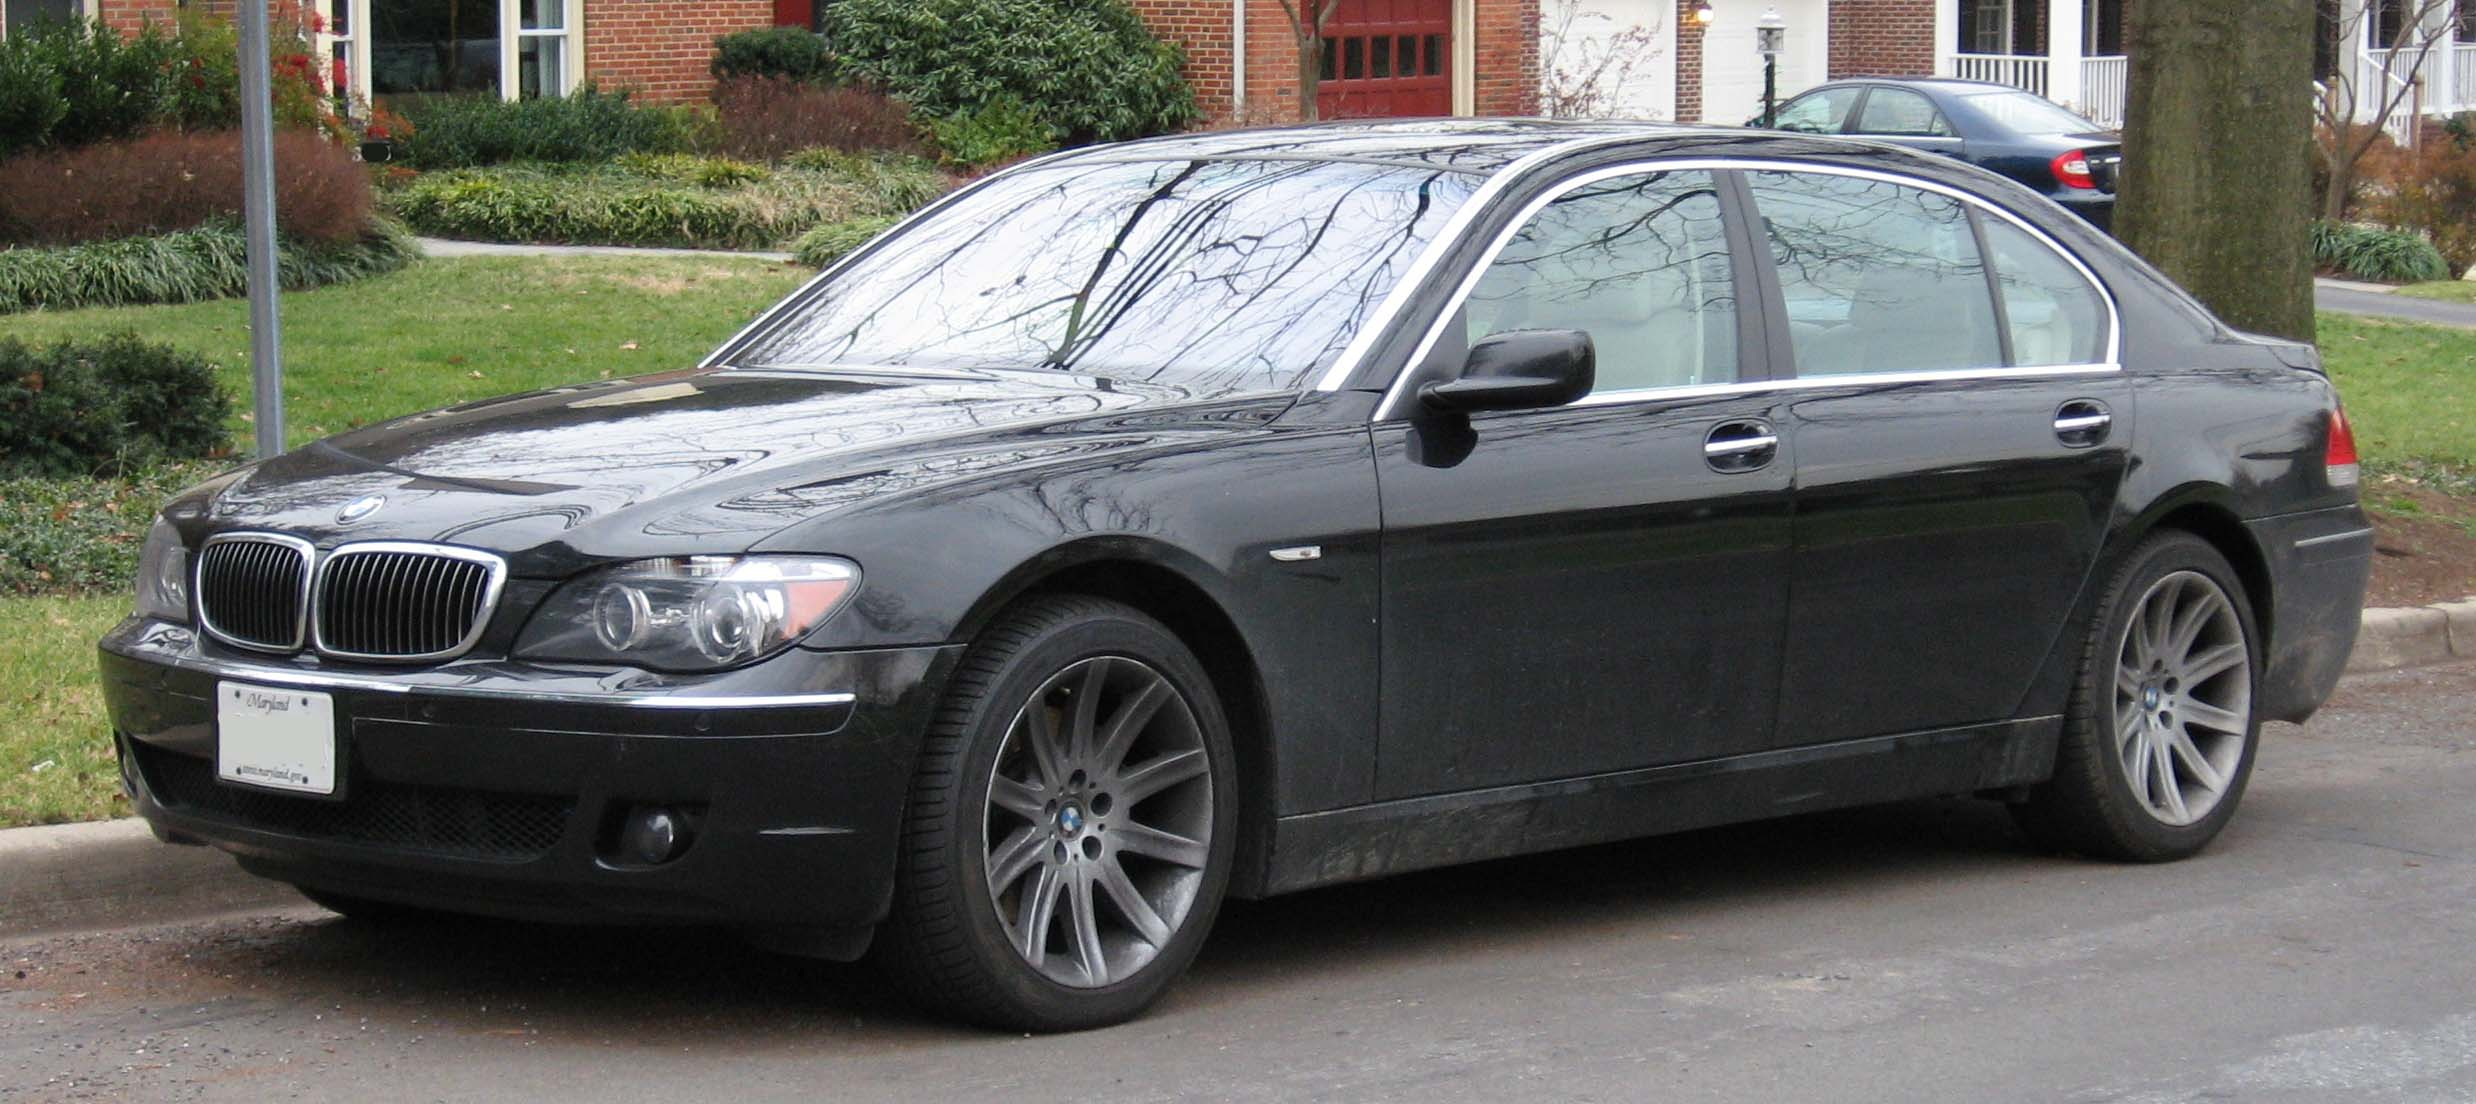 2006 Bmw 750i >> File:BMW 750i.jpg - Wikimedia Commons